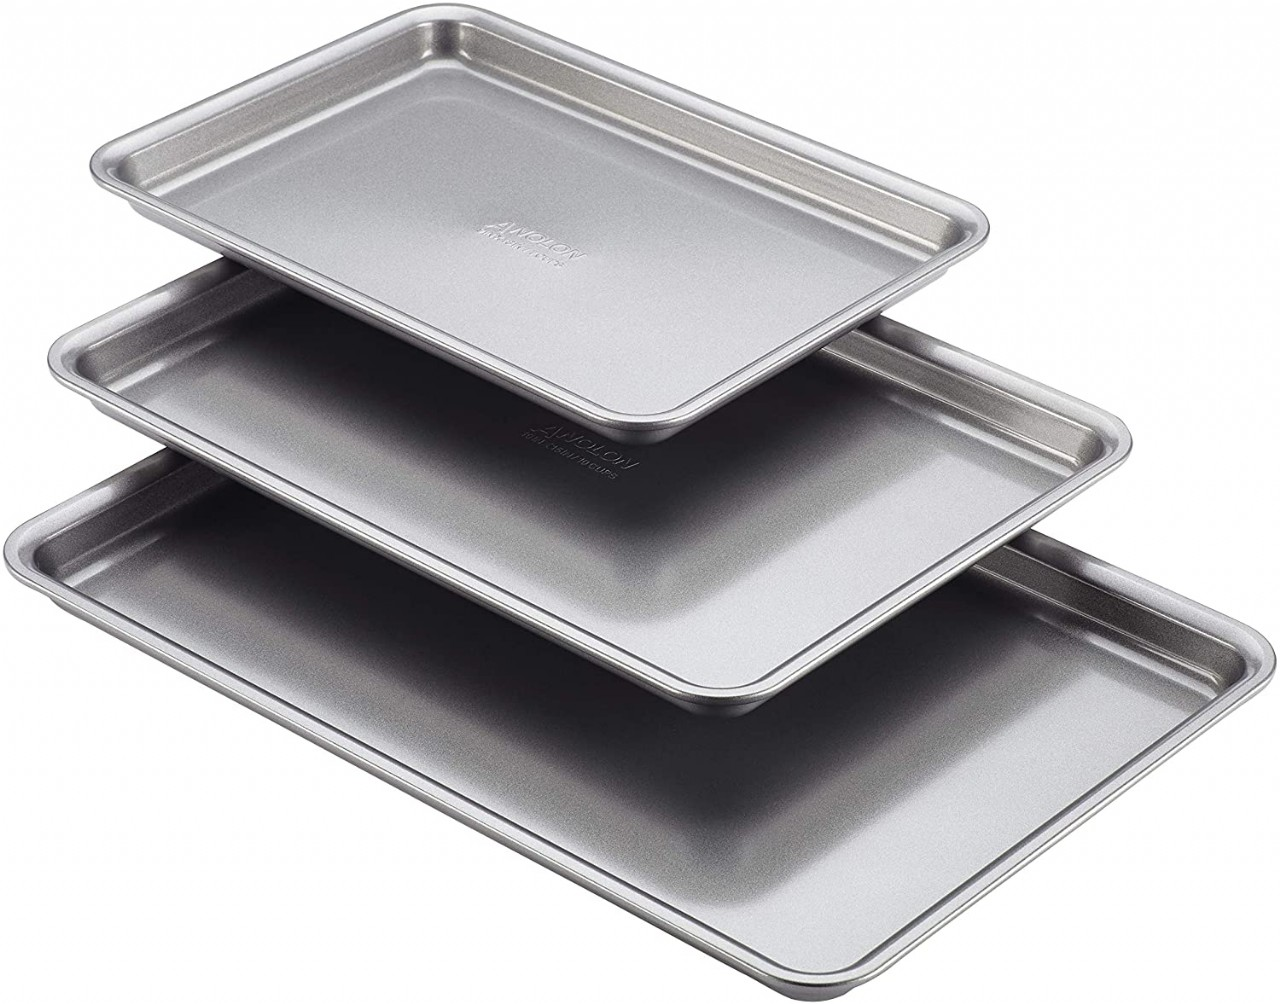 Anolon 46864 Gourmet Nonstick Bakeware Set with Nonstick Cookie Sheets / Baking Sheets - 3 Piece